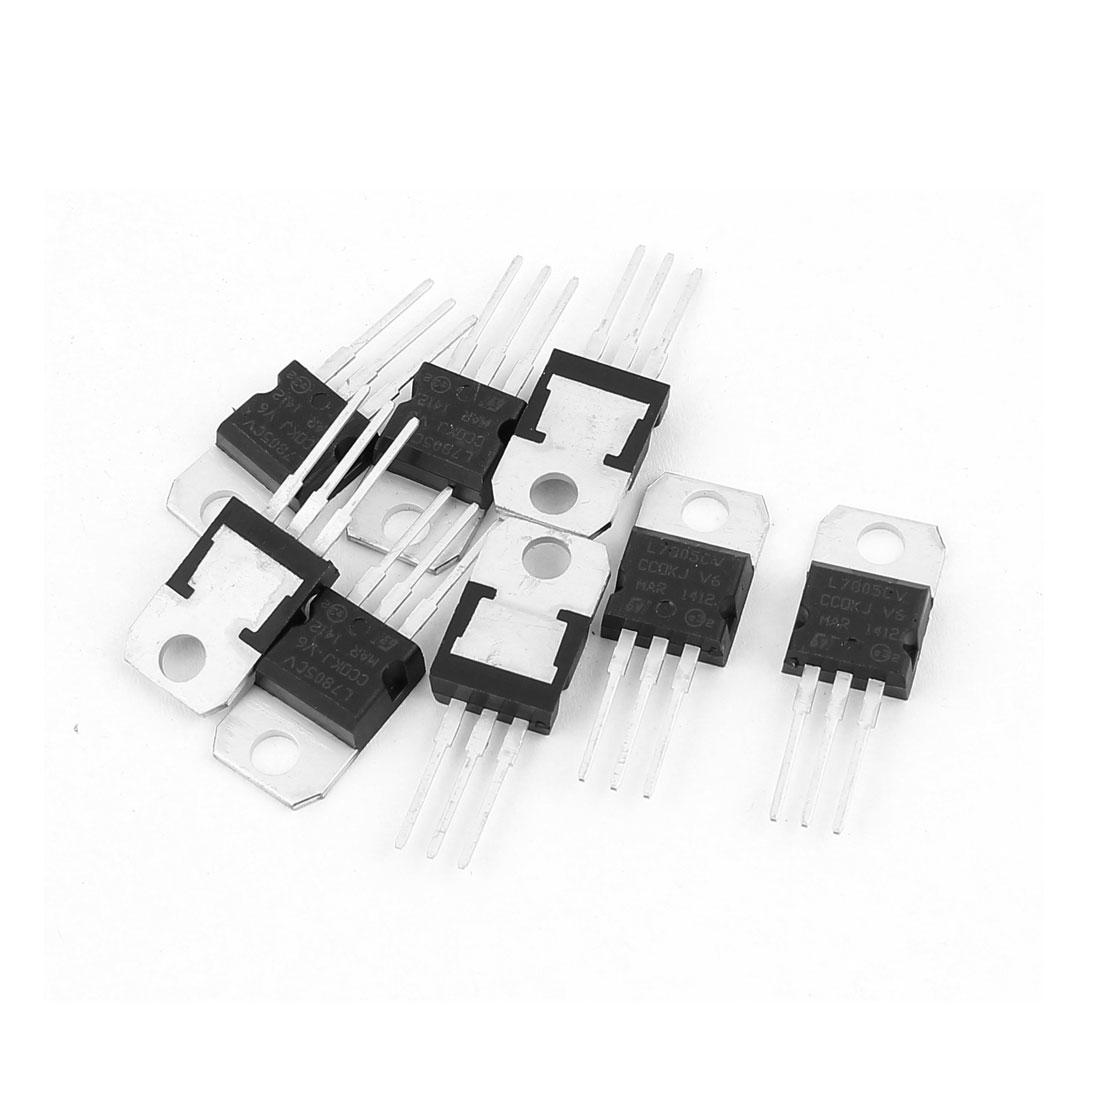 8 Pcs L7805CV 3 Terminals Negative Voltage Regulator 1.5A 5V TO-220 Package